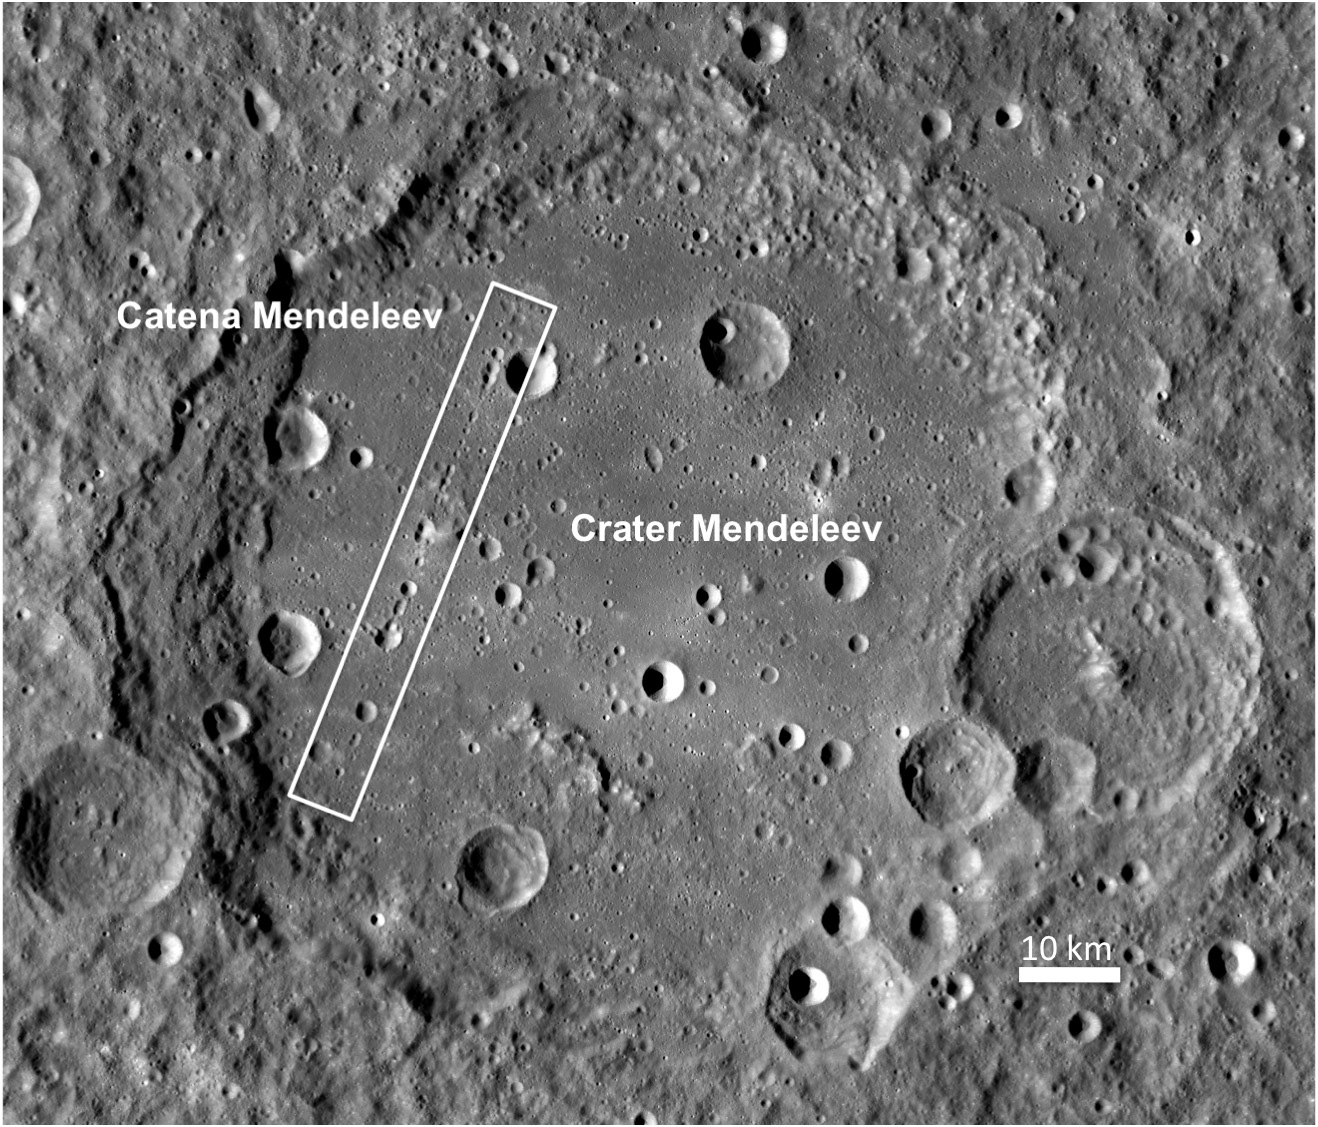 Impact crater full of impact craters on the Moon.